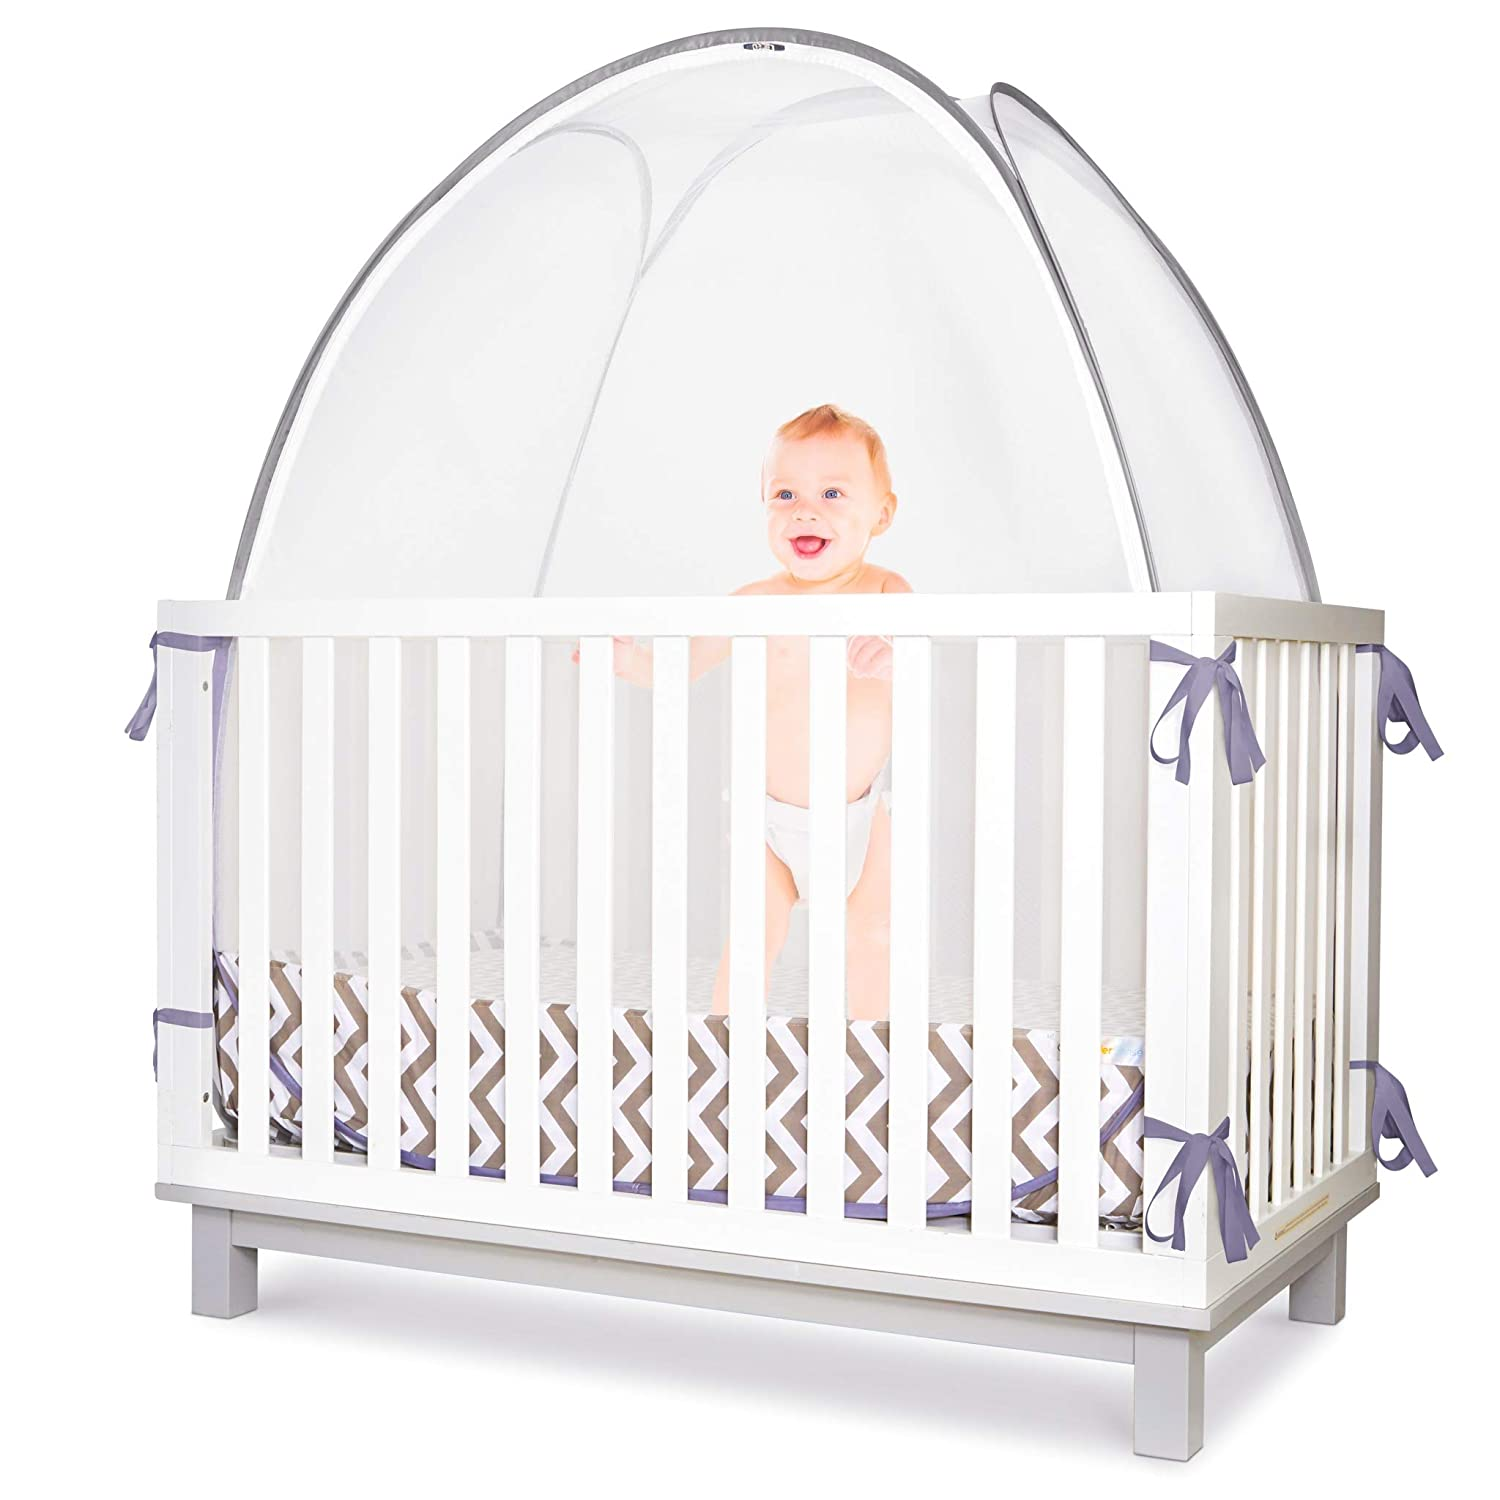 Baby Safety Crib Tent Toddler Crib Topper To Keep Baby From Climbing Out Clear View See Through Mesh Crib Netting Mosquito Net Pop Up Crib Tent Canopy To Keep